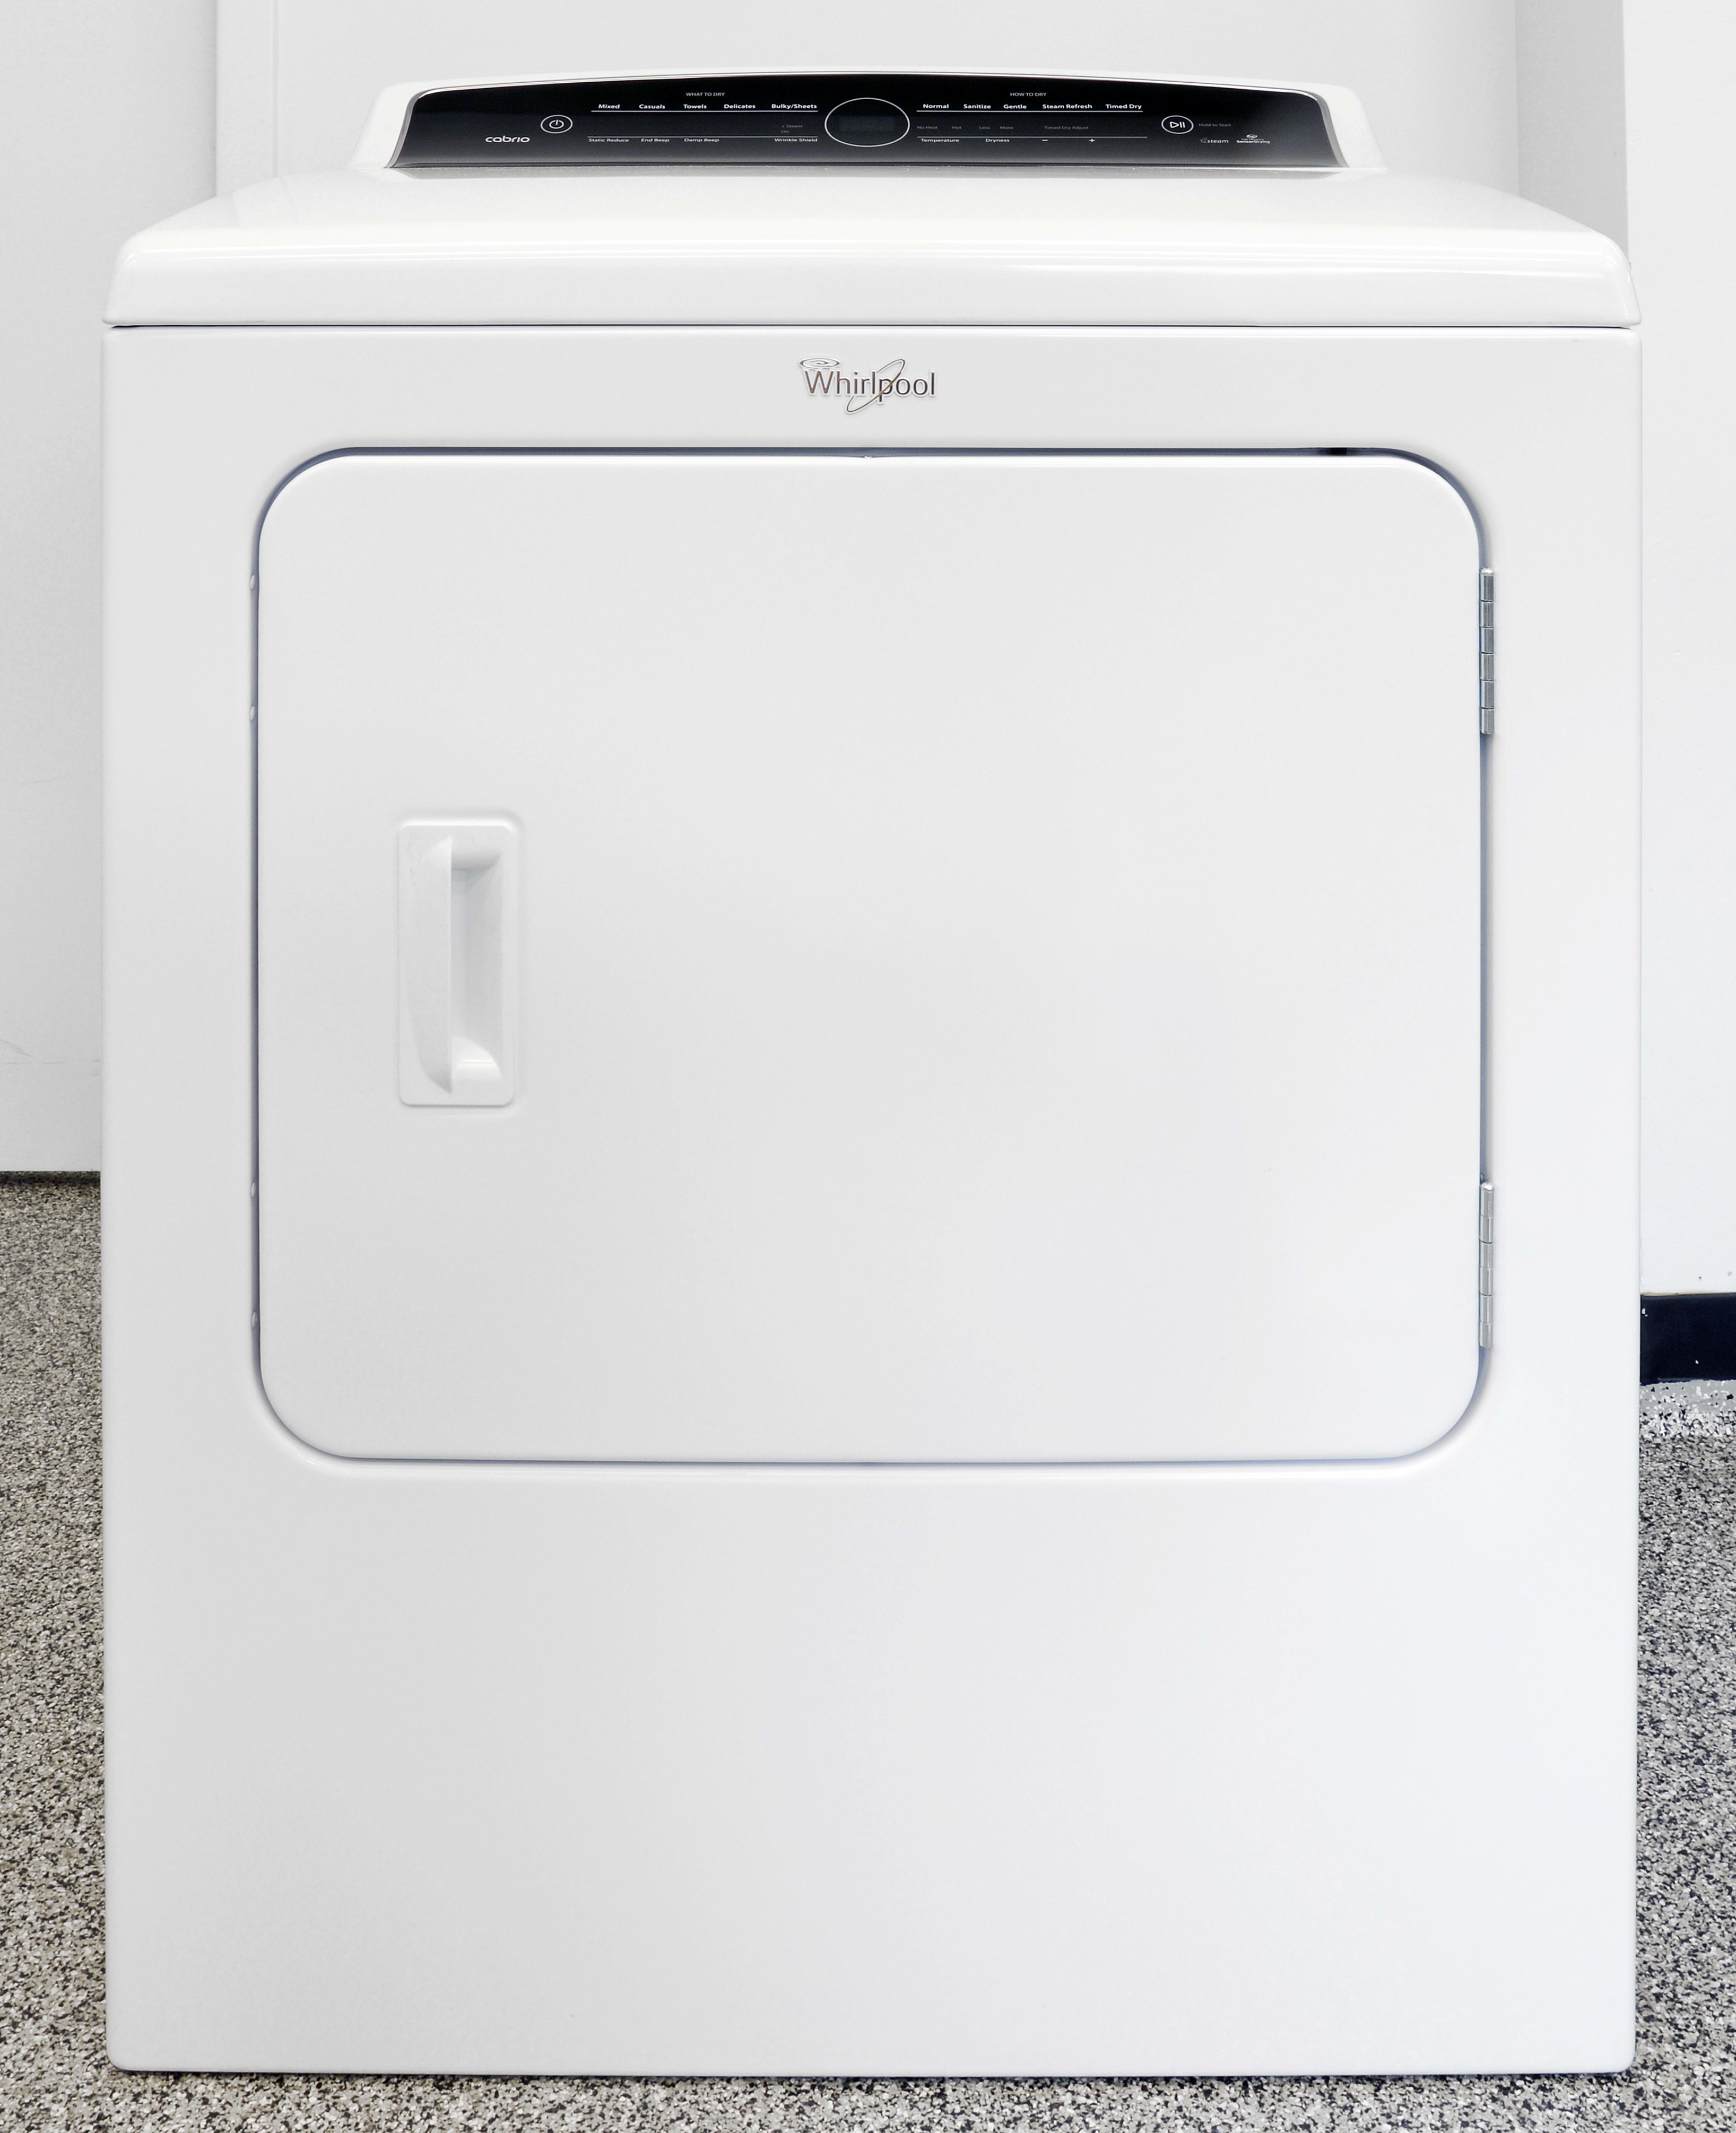 If it weren't for the fancy controls, the Whirlpool Cabrio WED7300DW would be a very basic budget dryer.